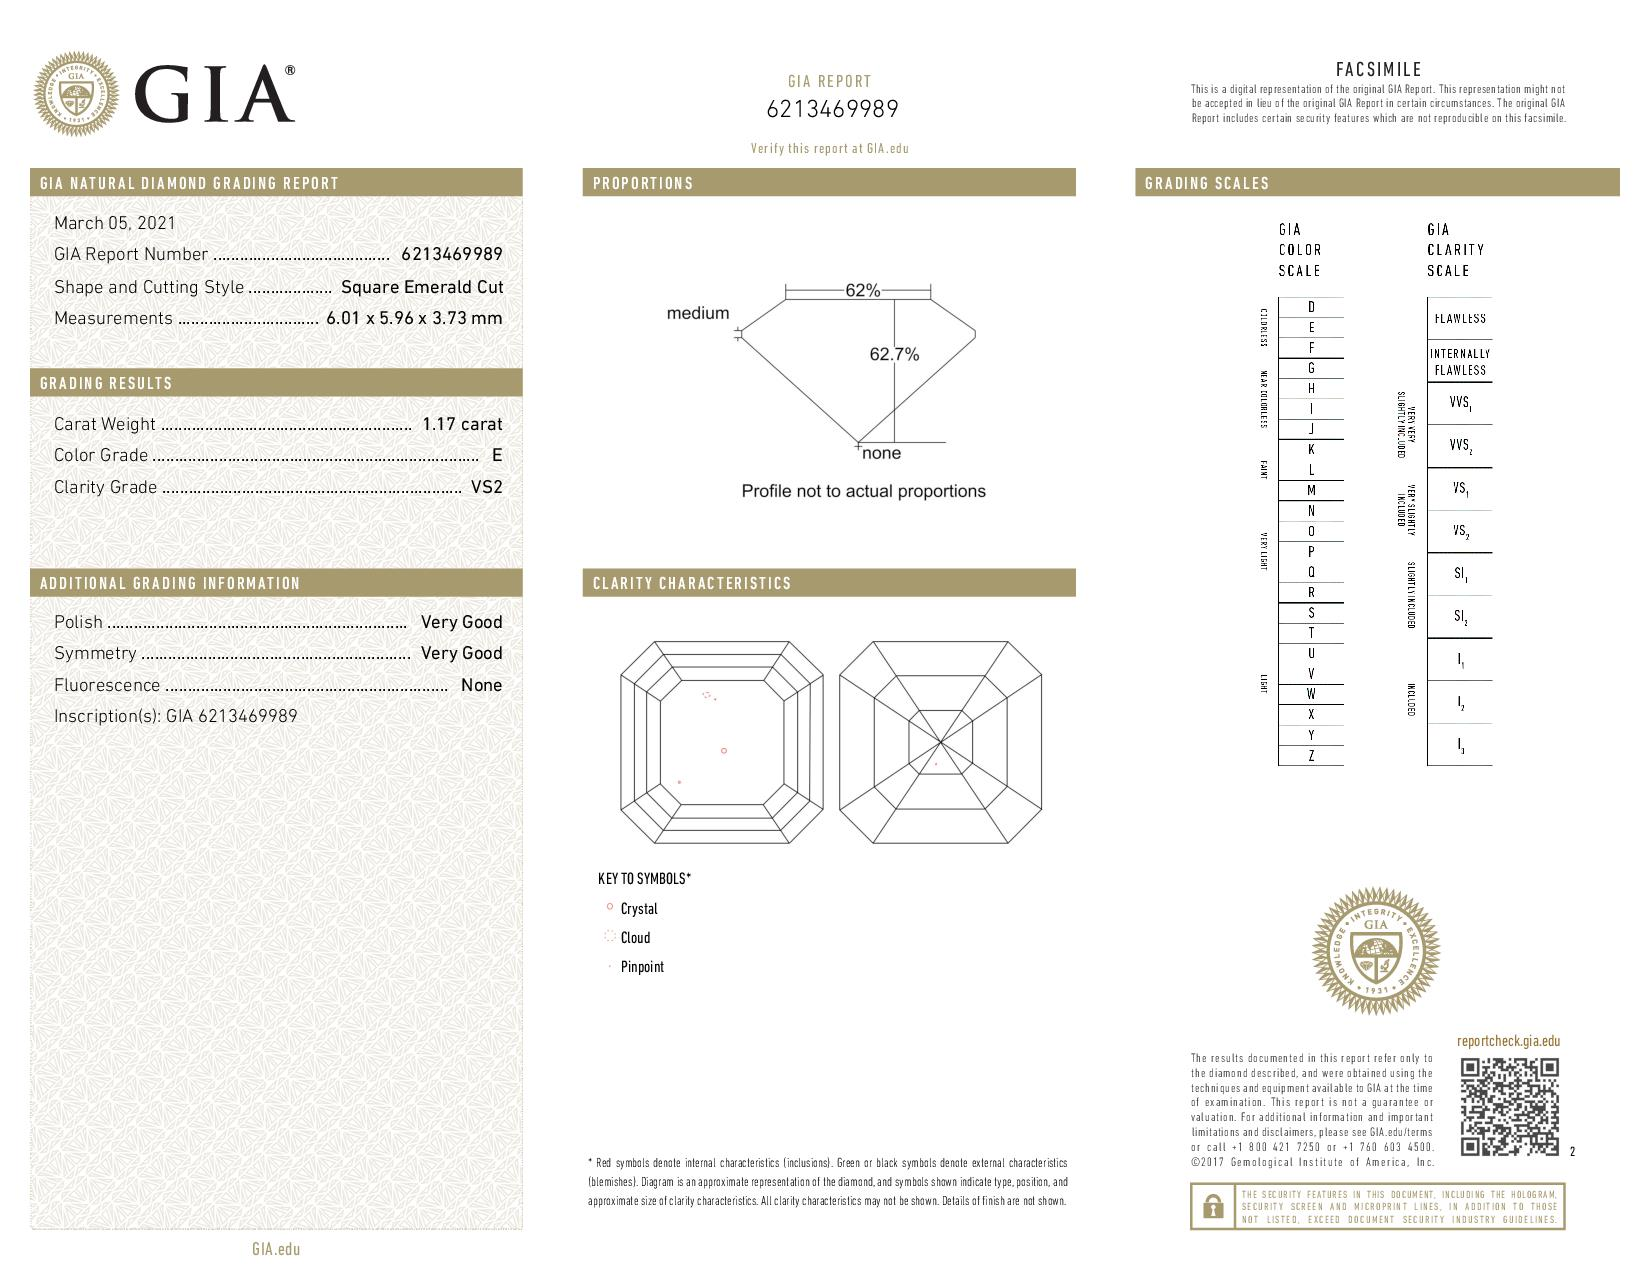 This is a 1.17 carat asscher shape, E color, VS2 clarity natural diamond accompanied by a GIA grading report.